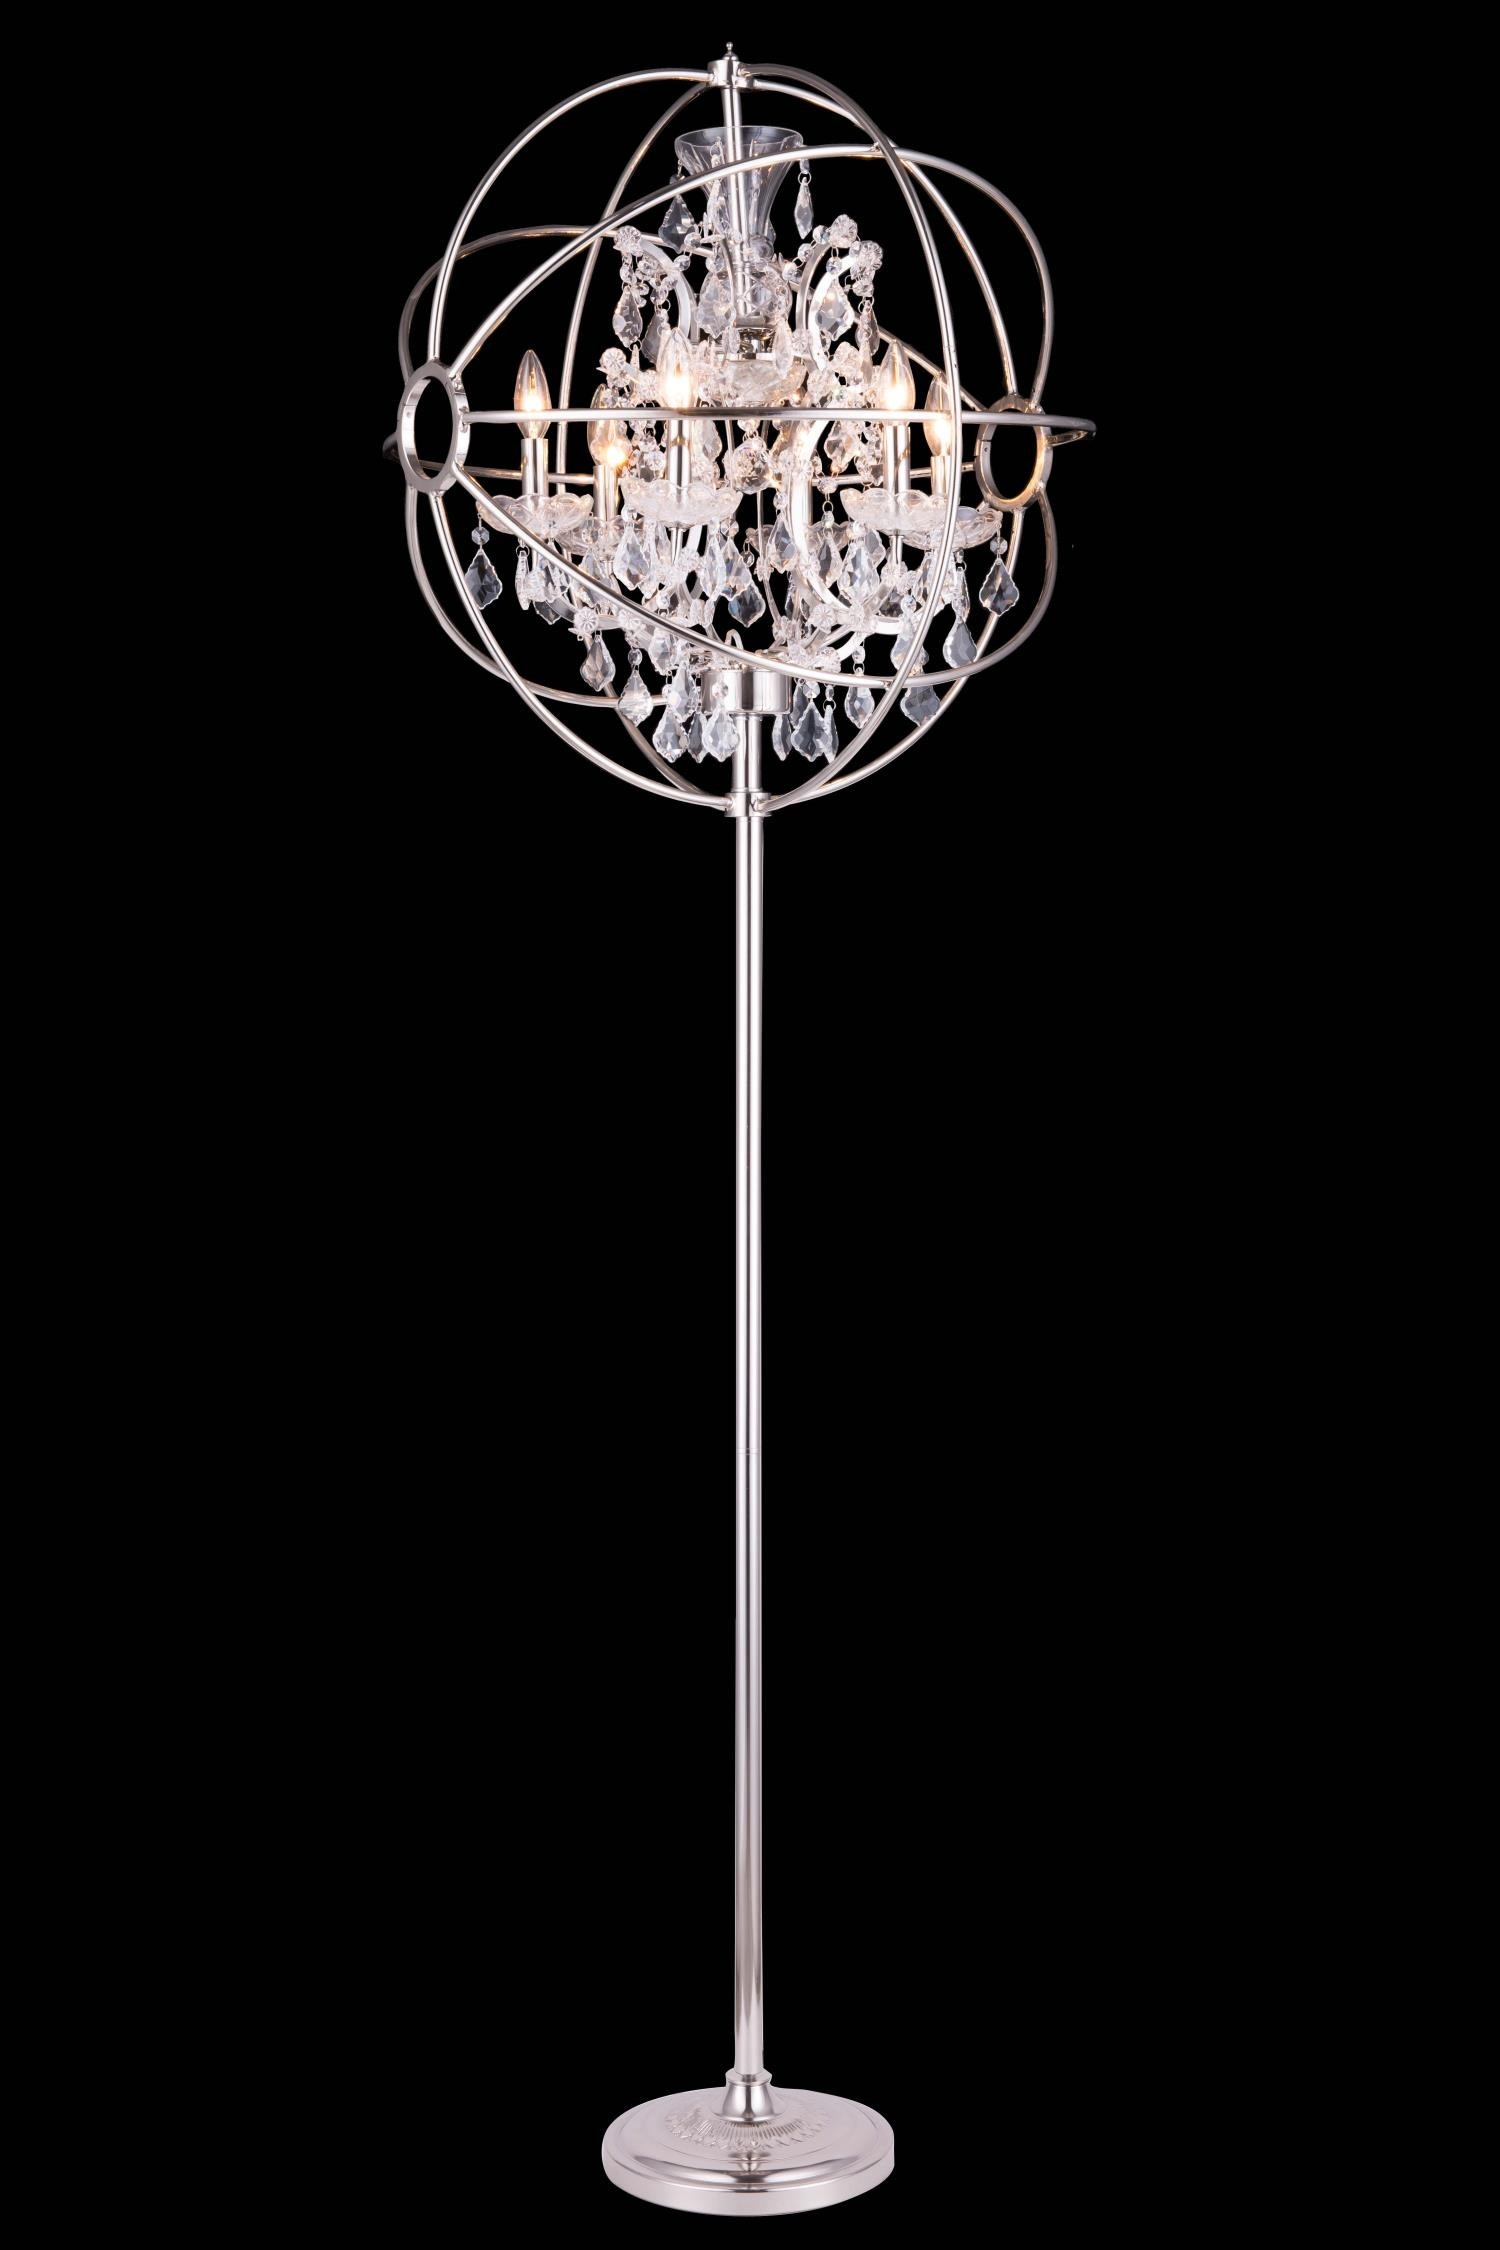 Top 25 Tall Standing Chandelier Lamps Chandelier Ideas